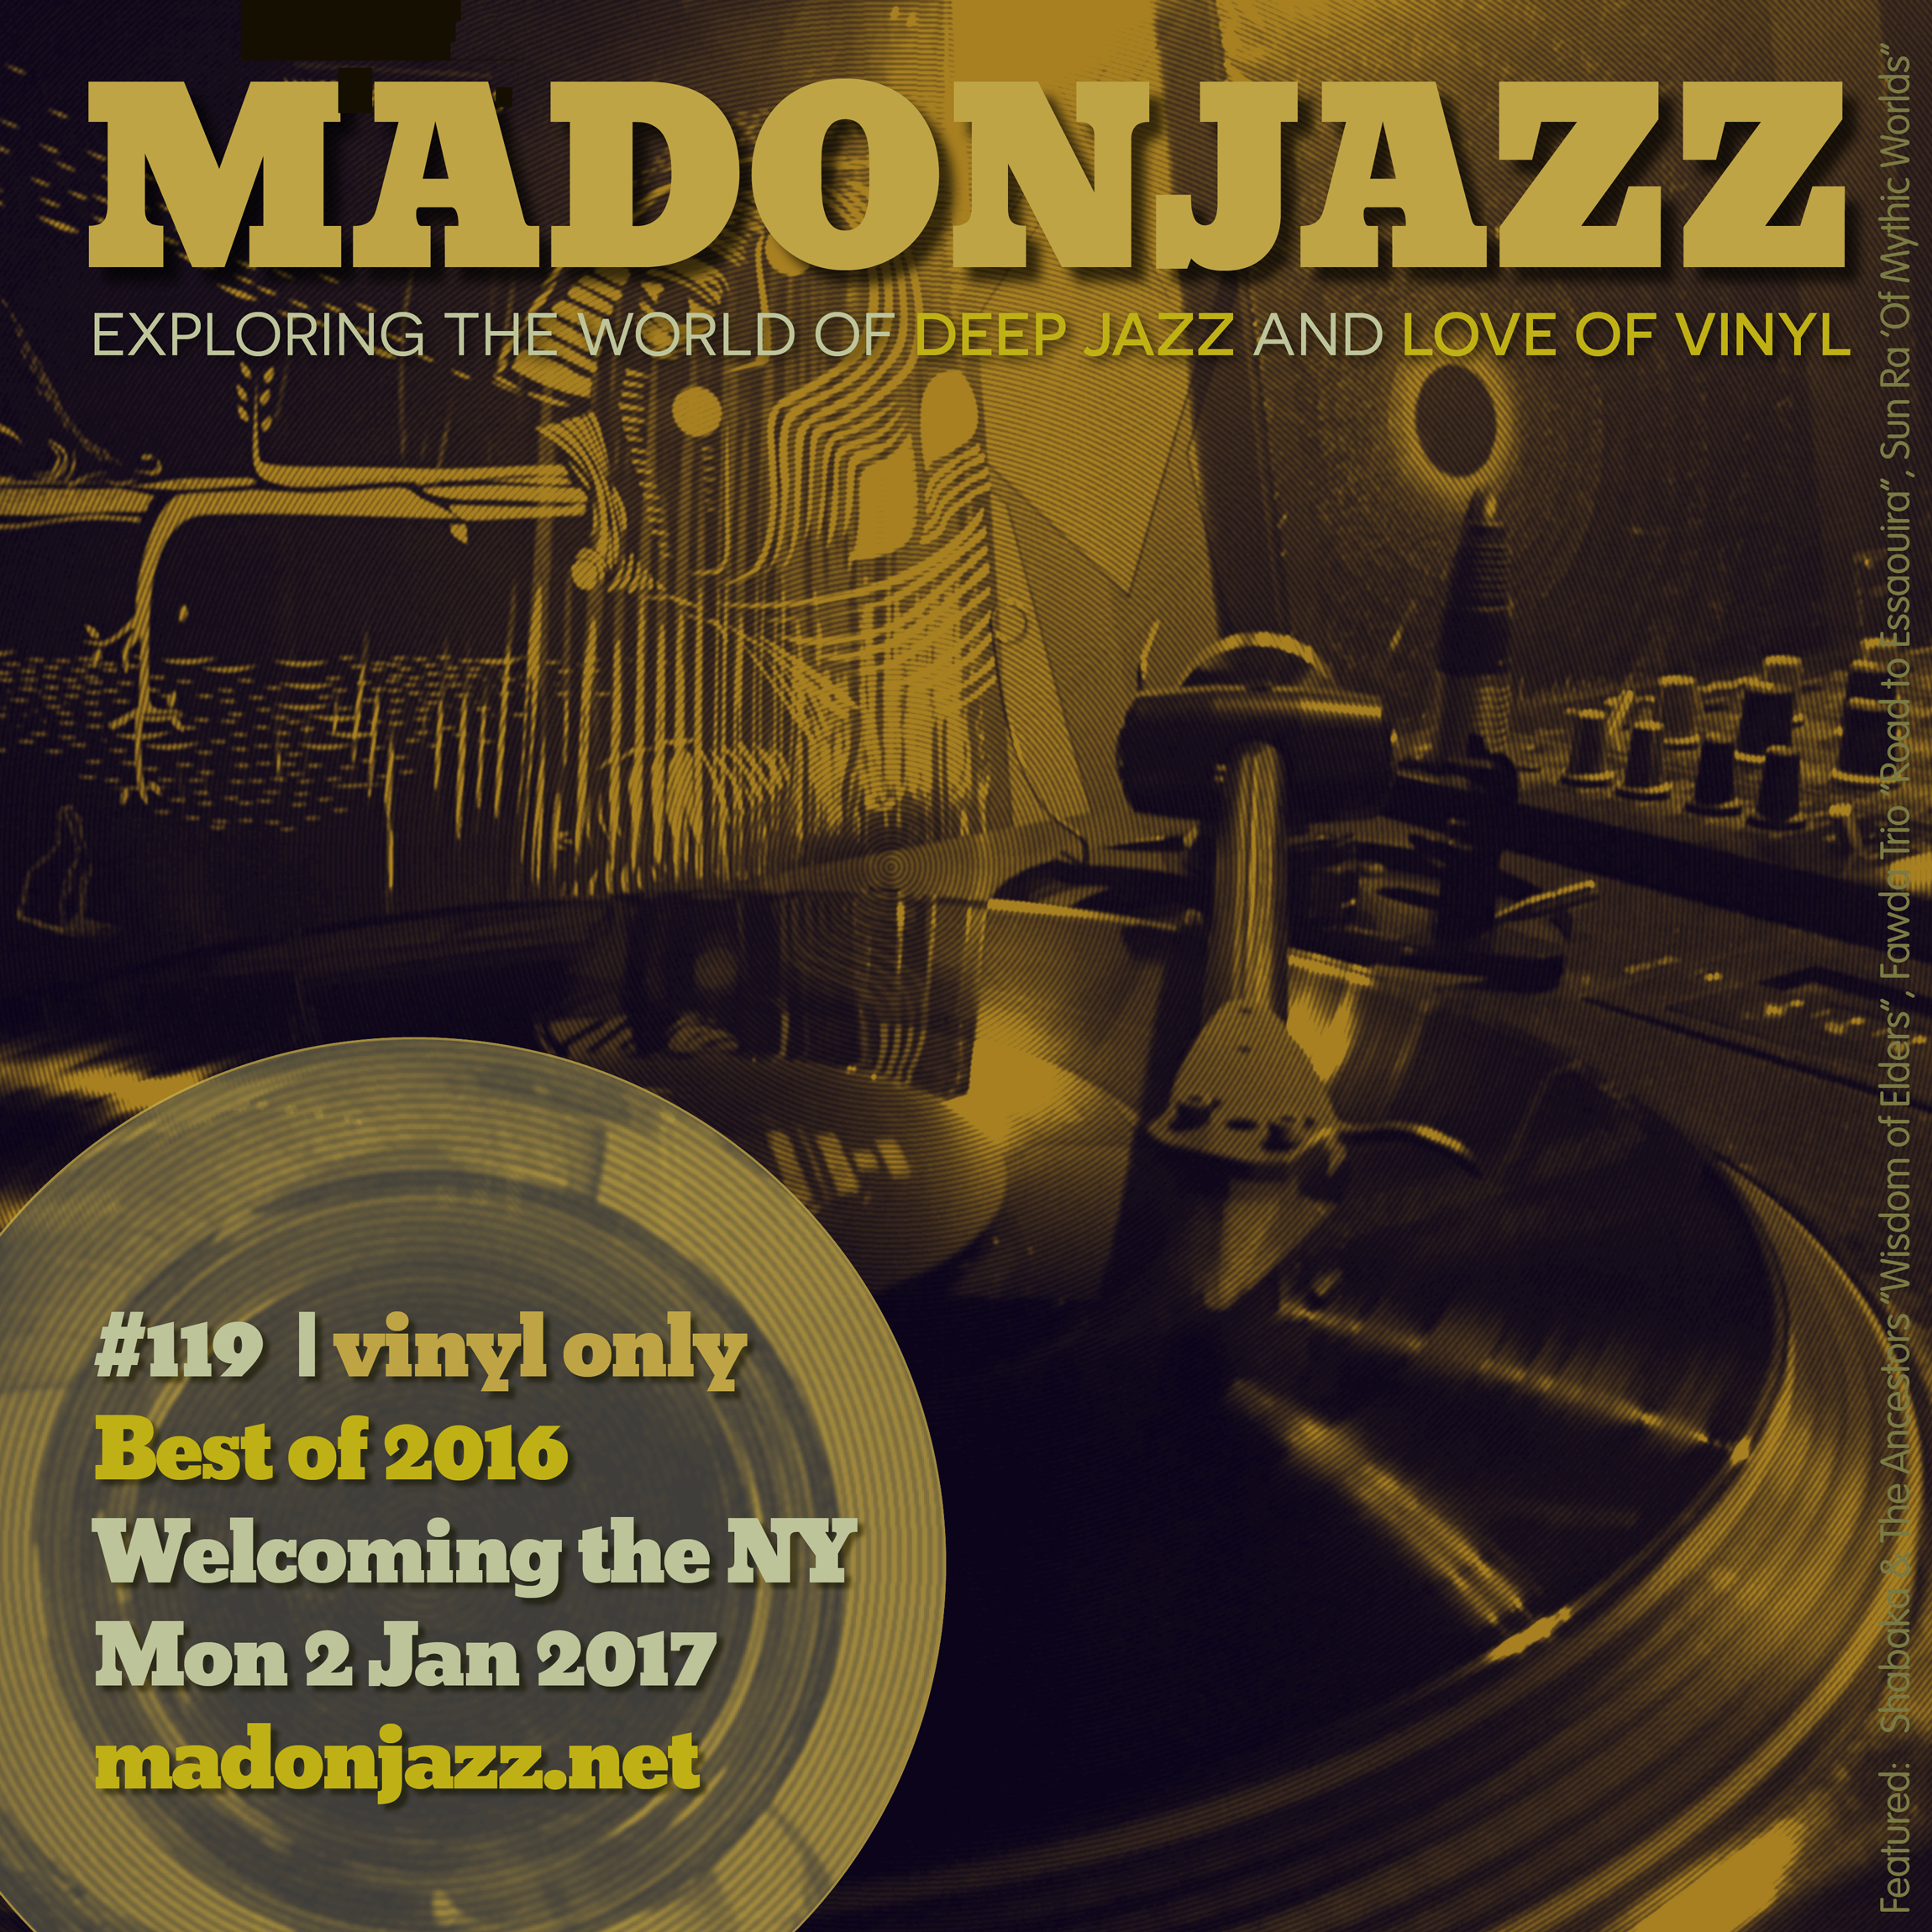 MADONJAZZ #119 Best releases and reissues of 2016